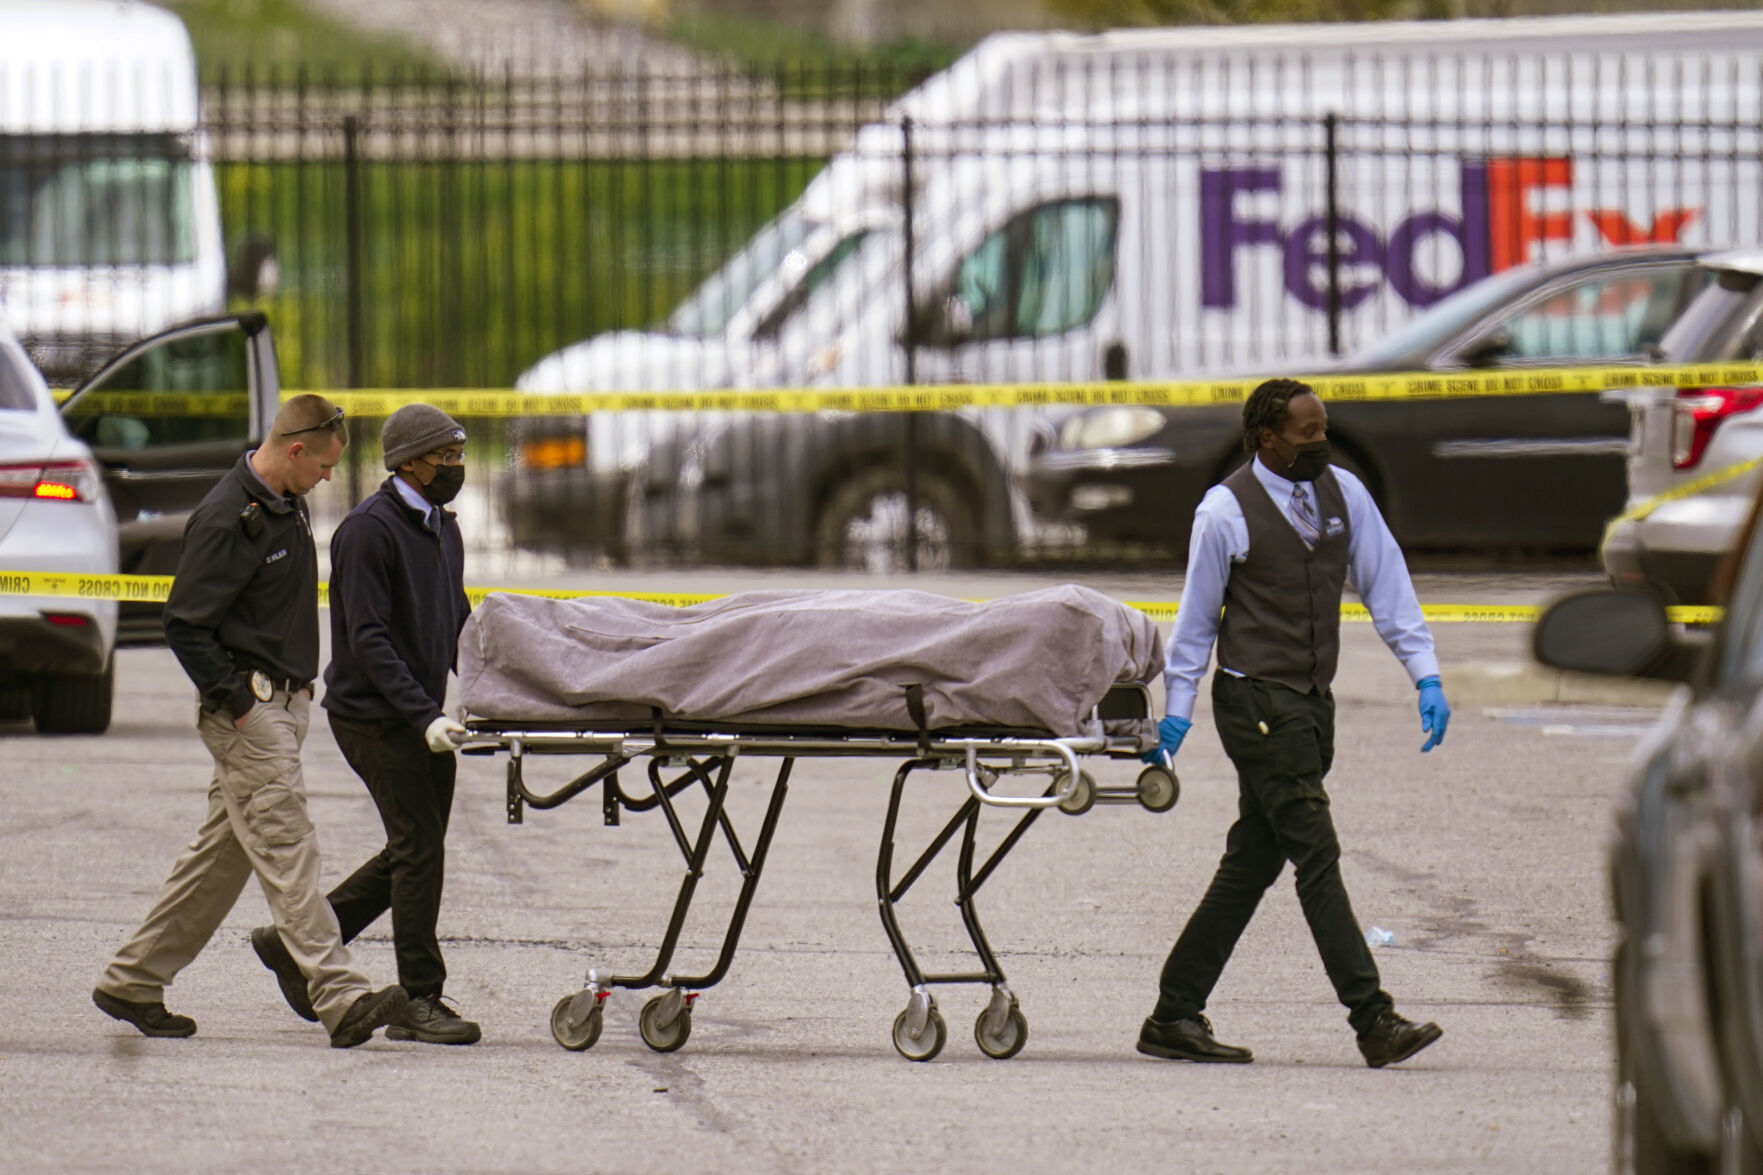 LATEST: Police ID killer in FedEx shooting as 19-year-old man, former employee